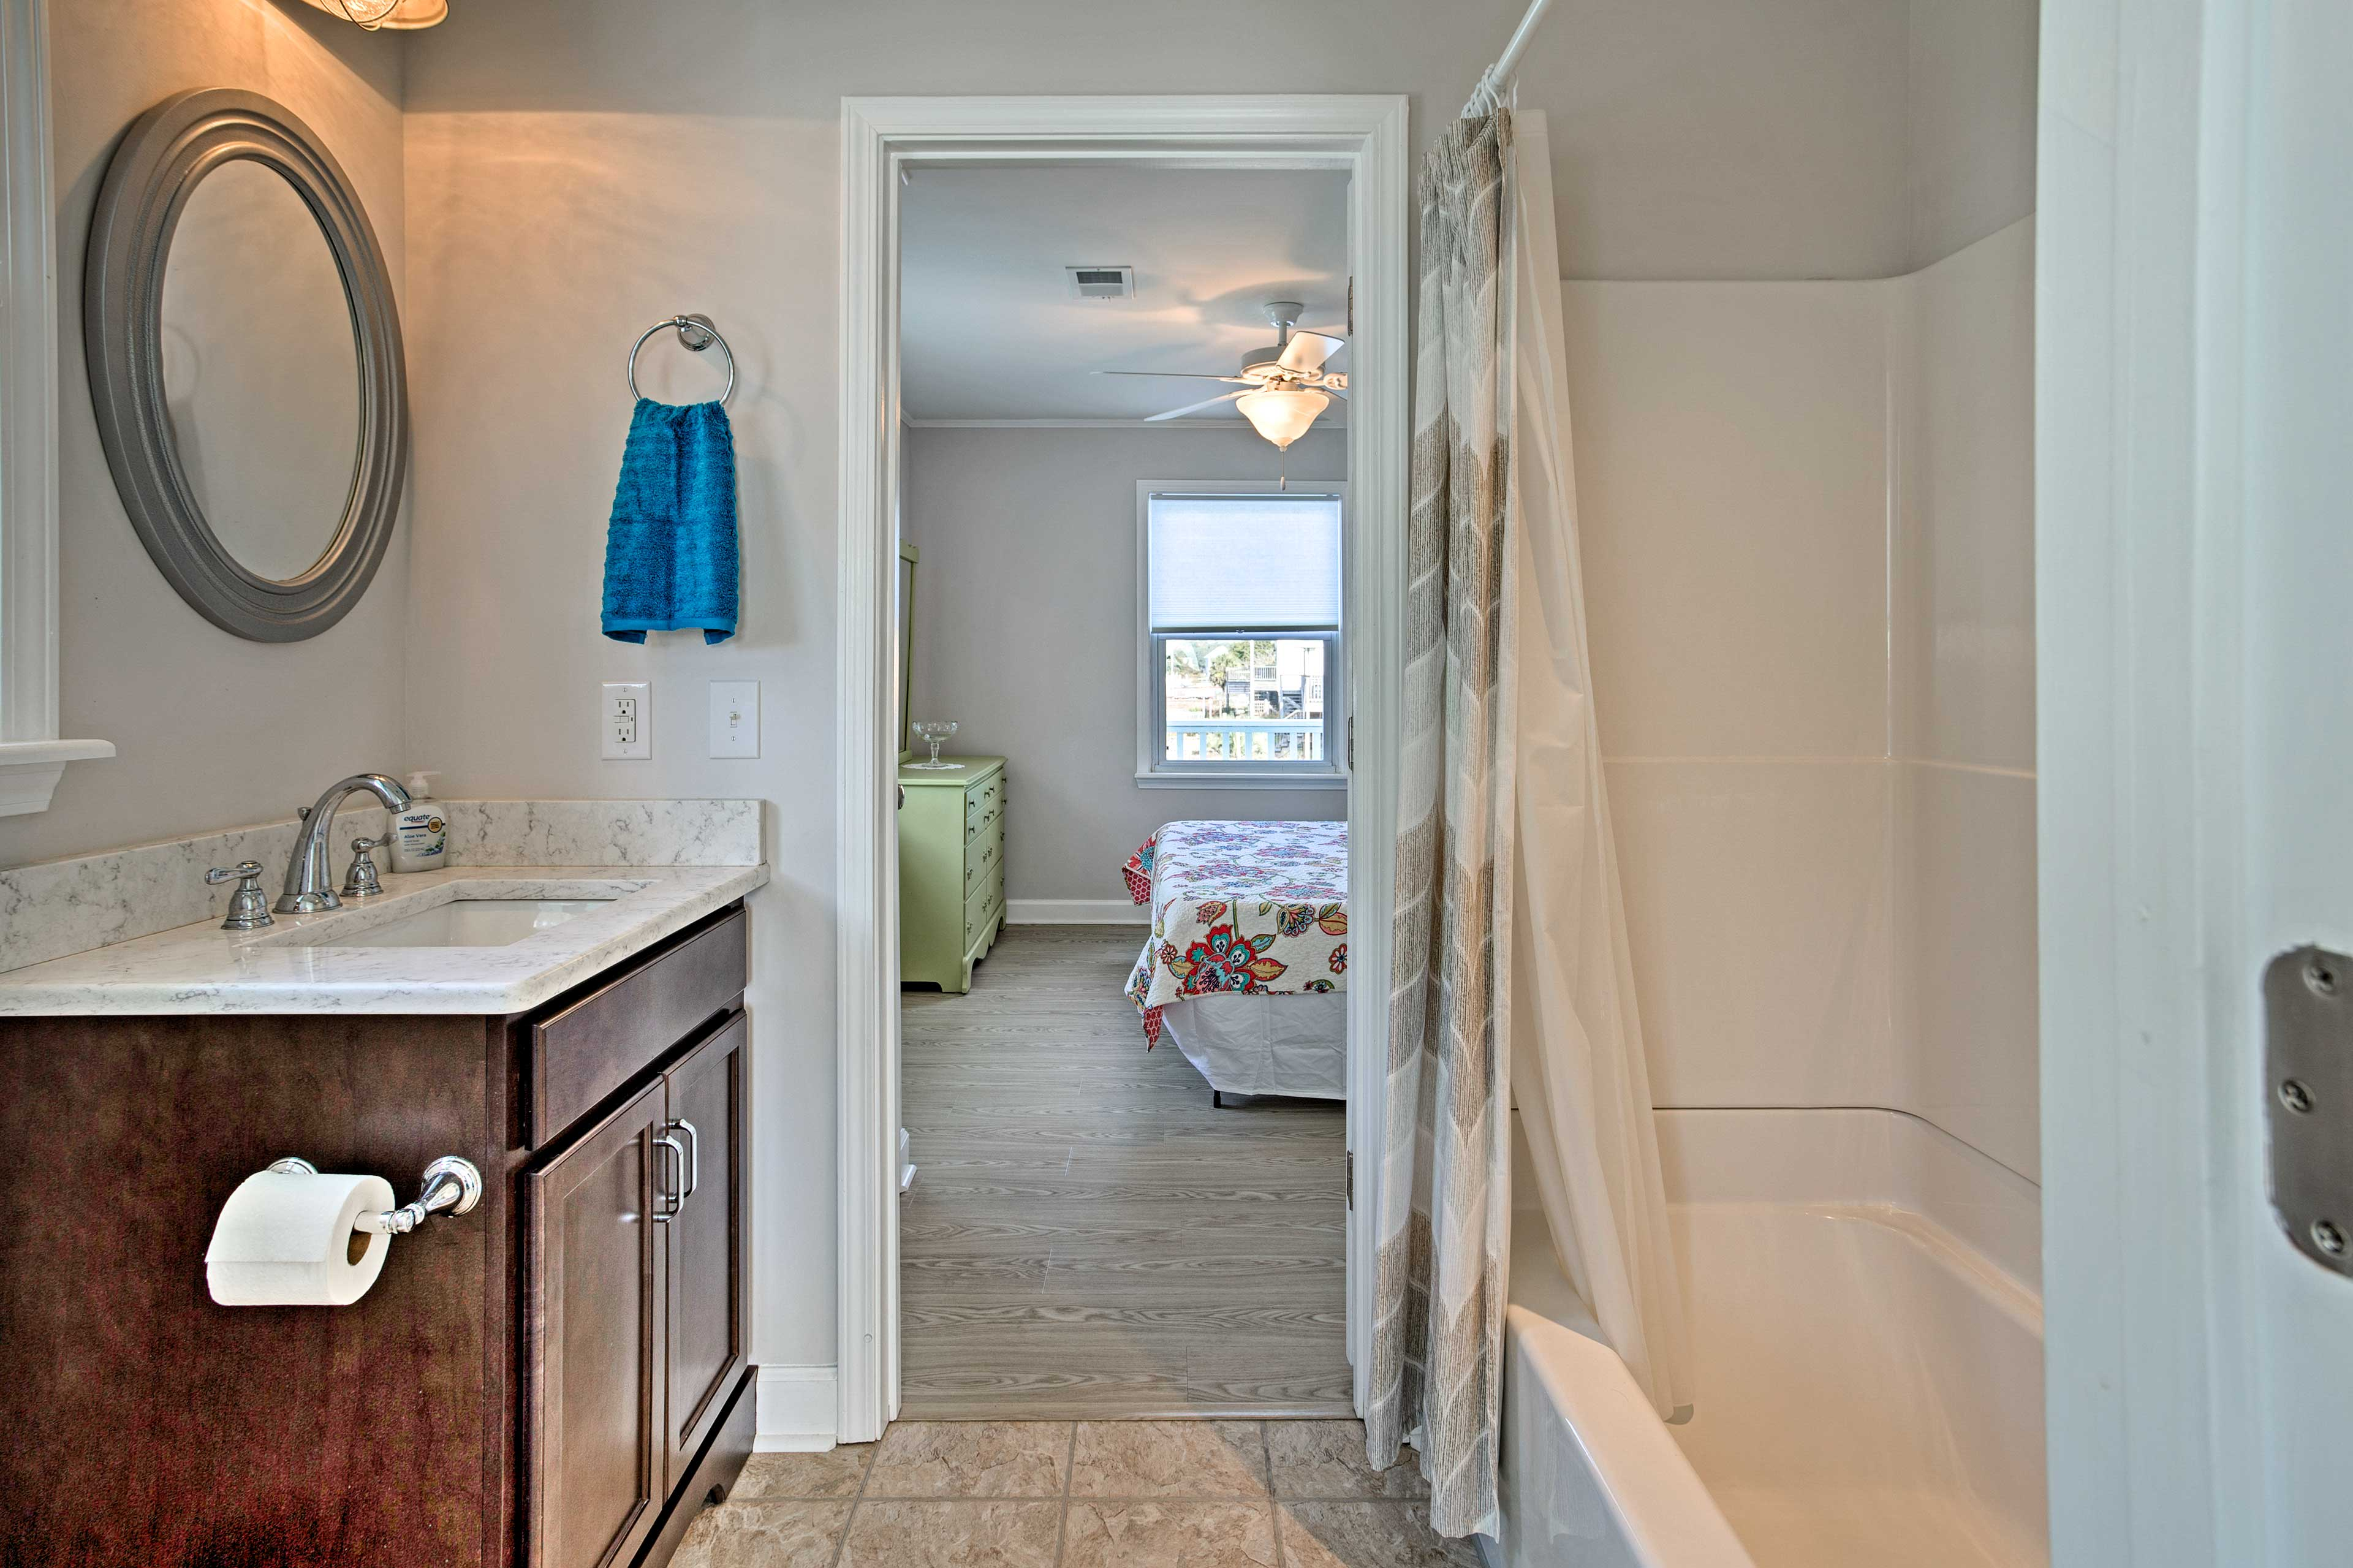 This home boasts 4 bathrooms, all complete with shower/tub combos.